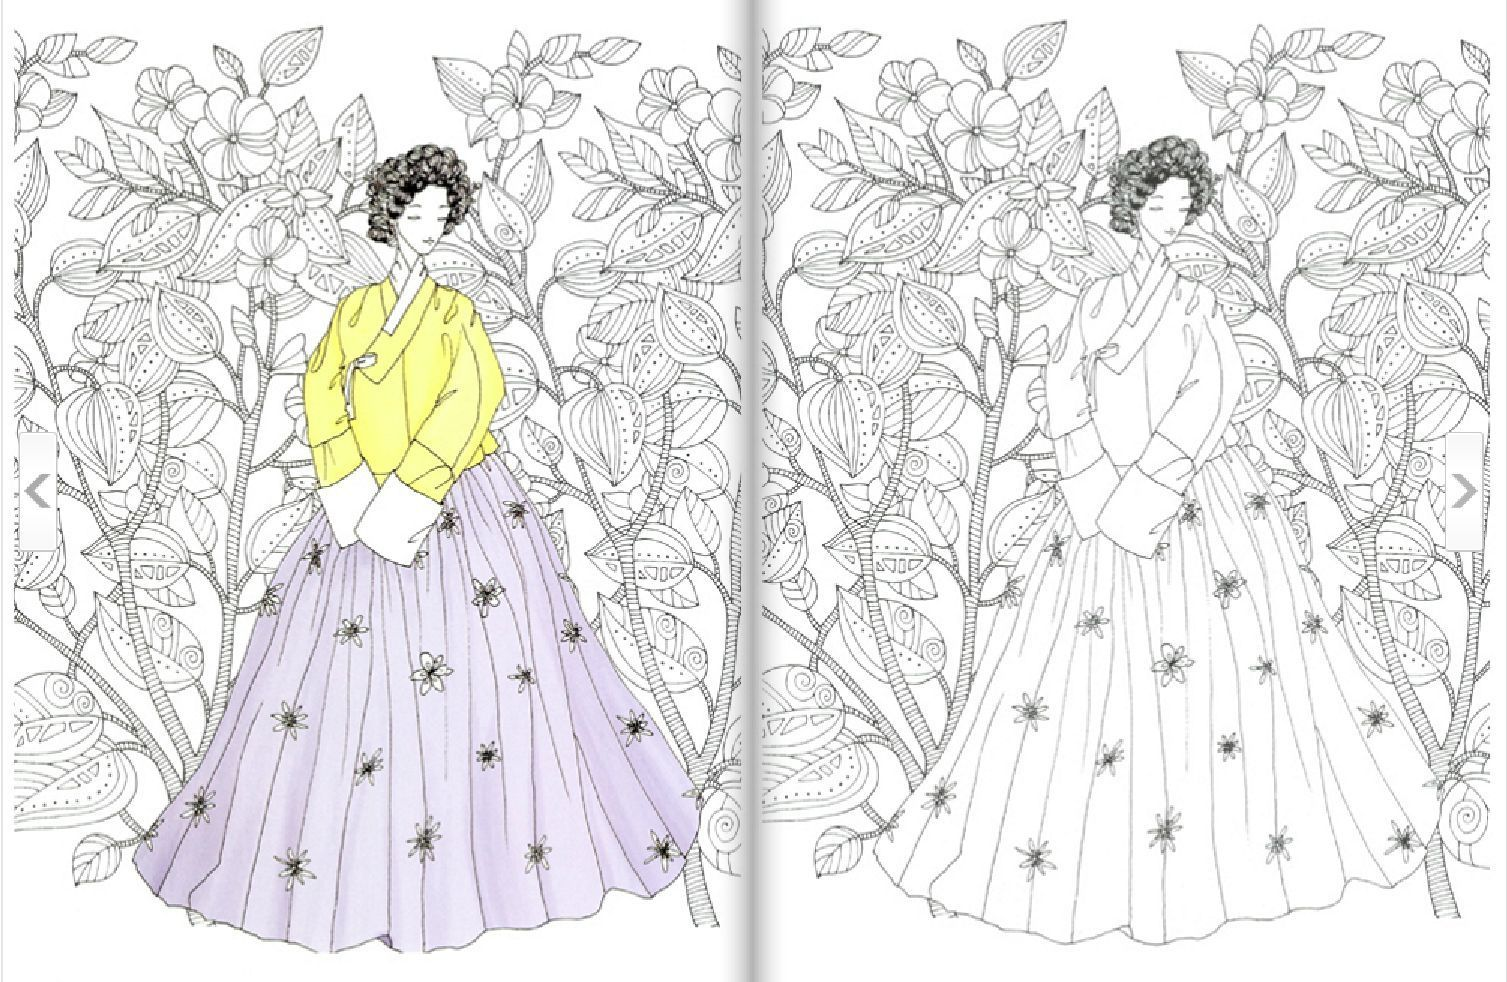 Fashion Coloring Book Hanbok Korean Costume Clothes Adult Gift Relax Art DIY Fun